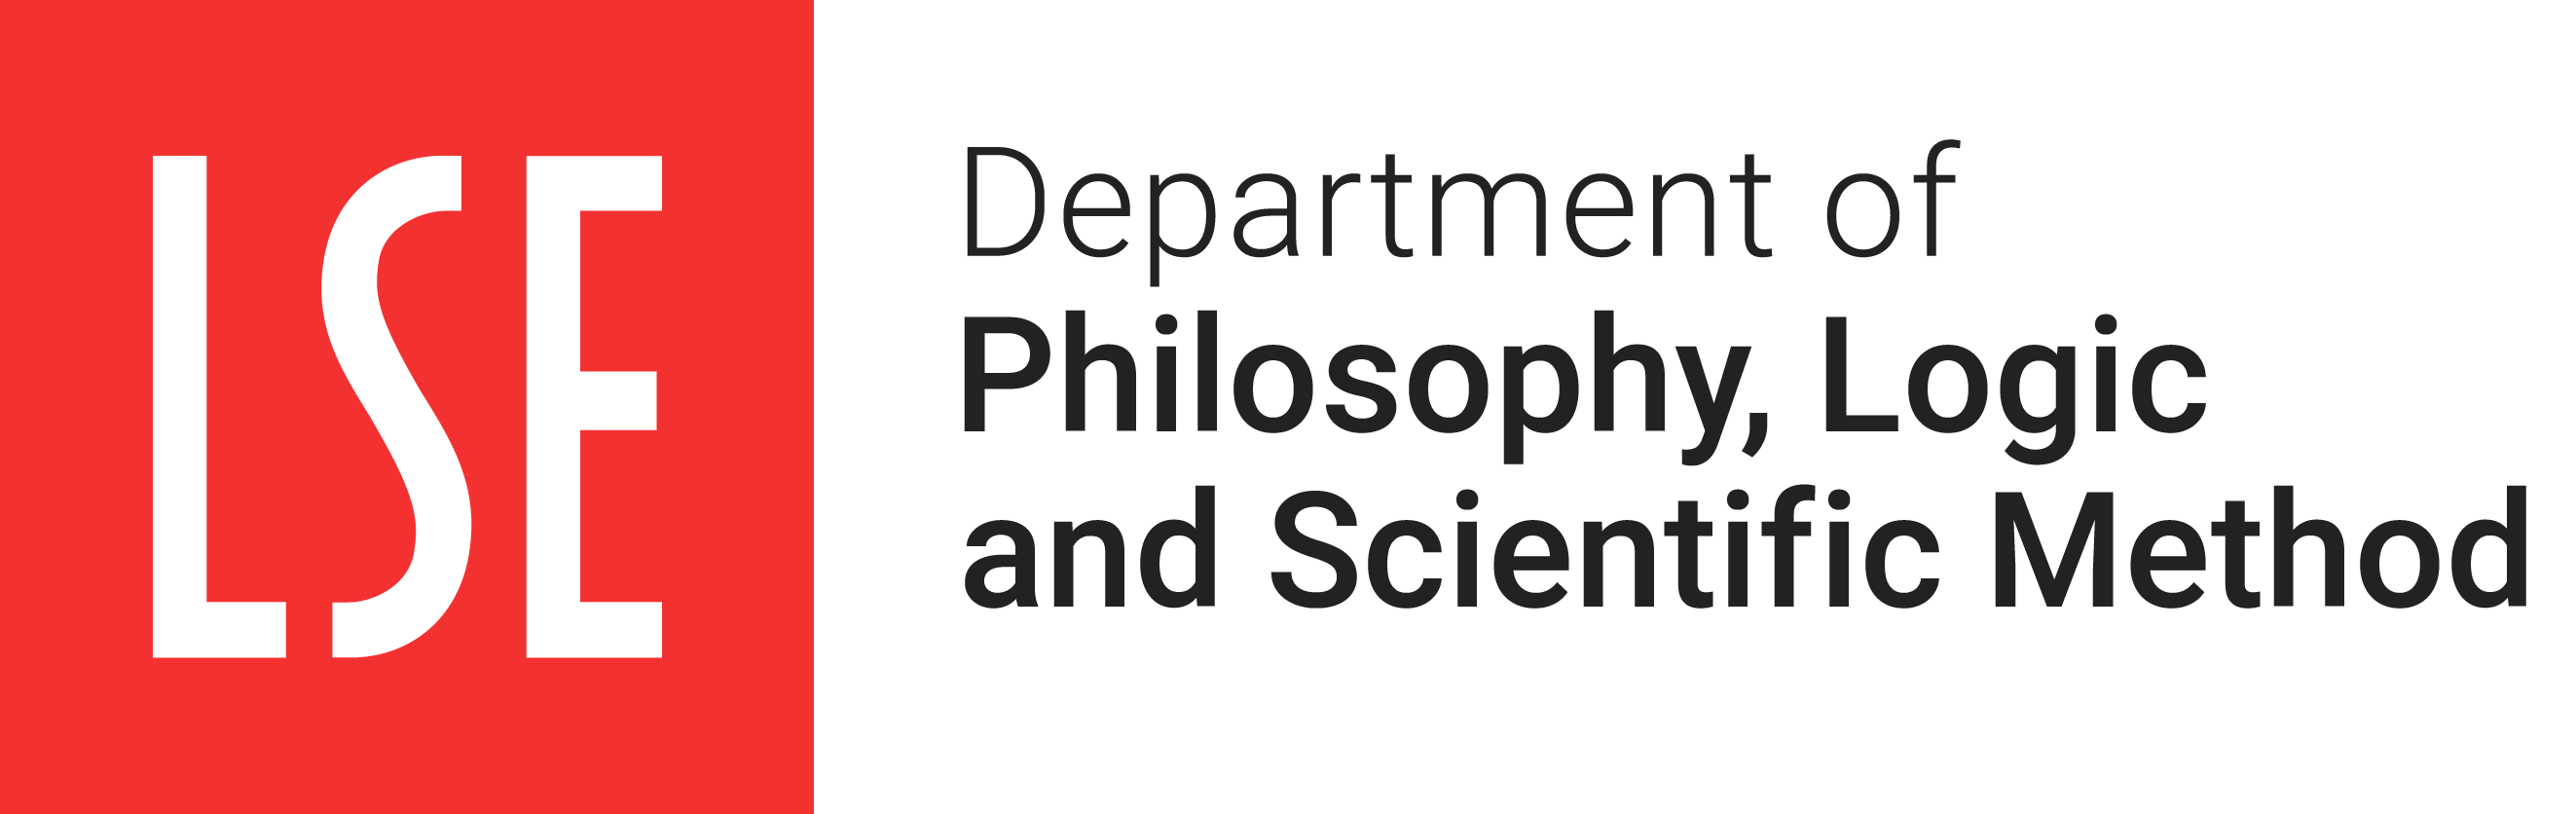 LSE Philosophy Logo